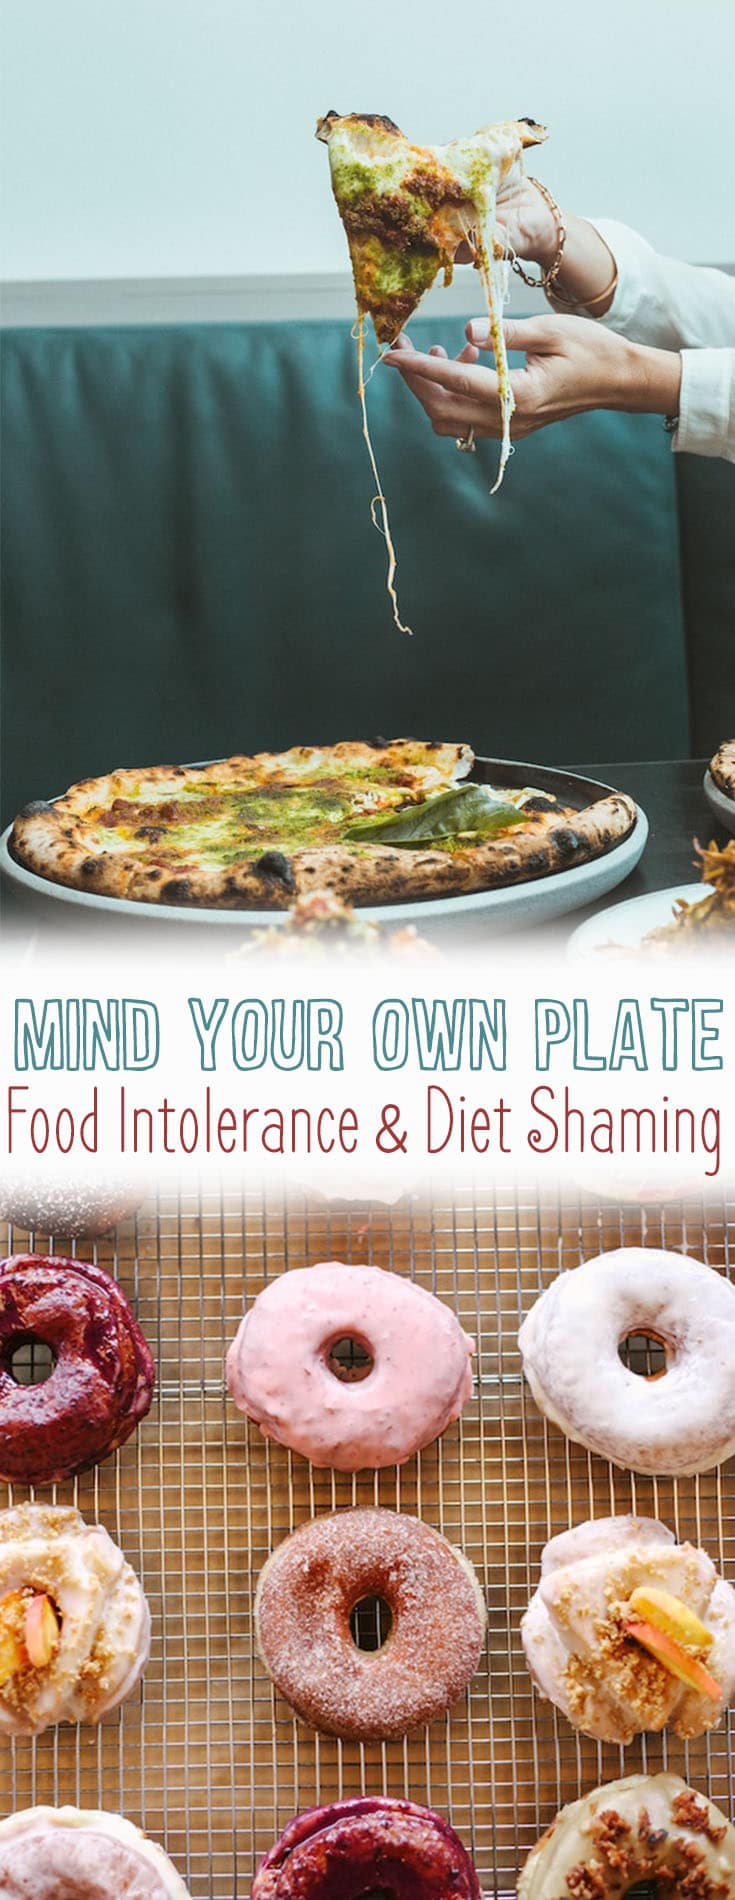 I explain why you should mind your own plate as so many people with specific diets have developed terrible food intolerance of others and diet shaming.